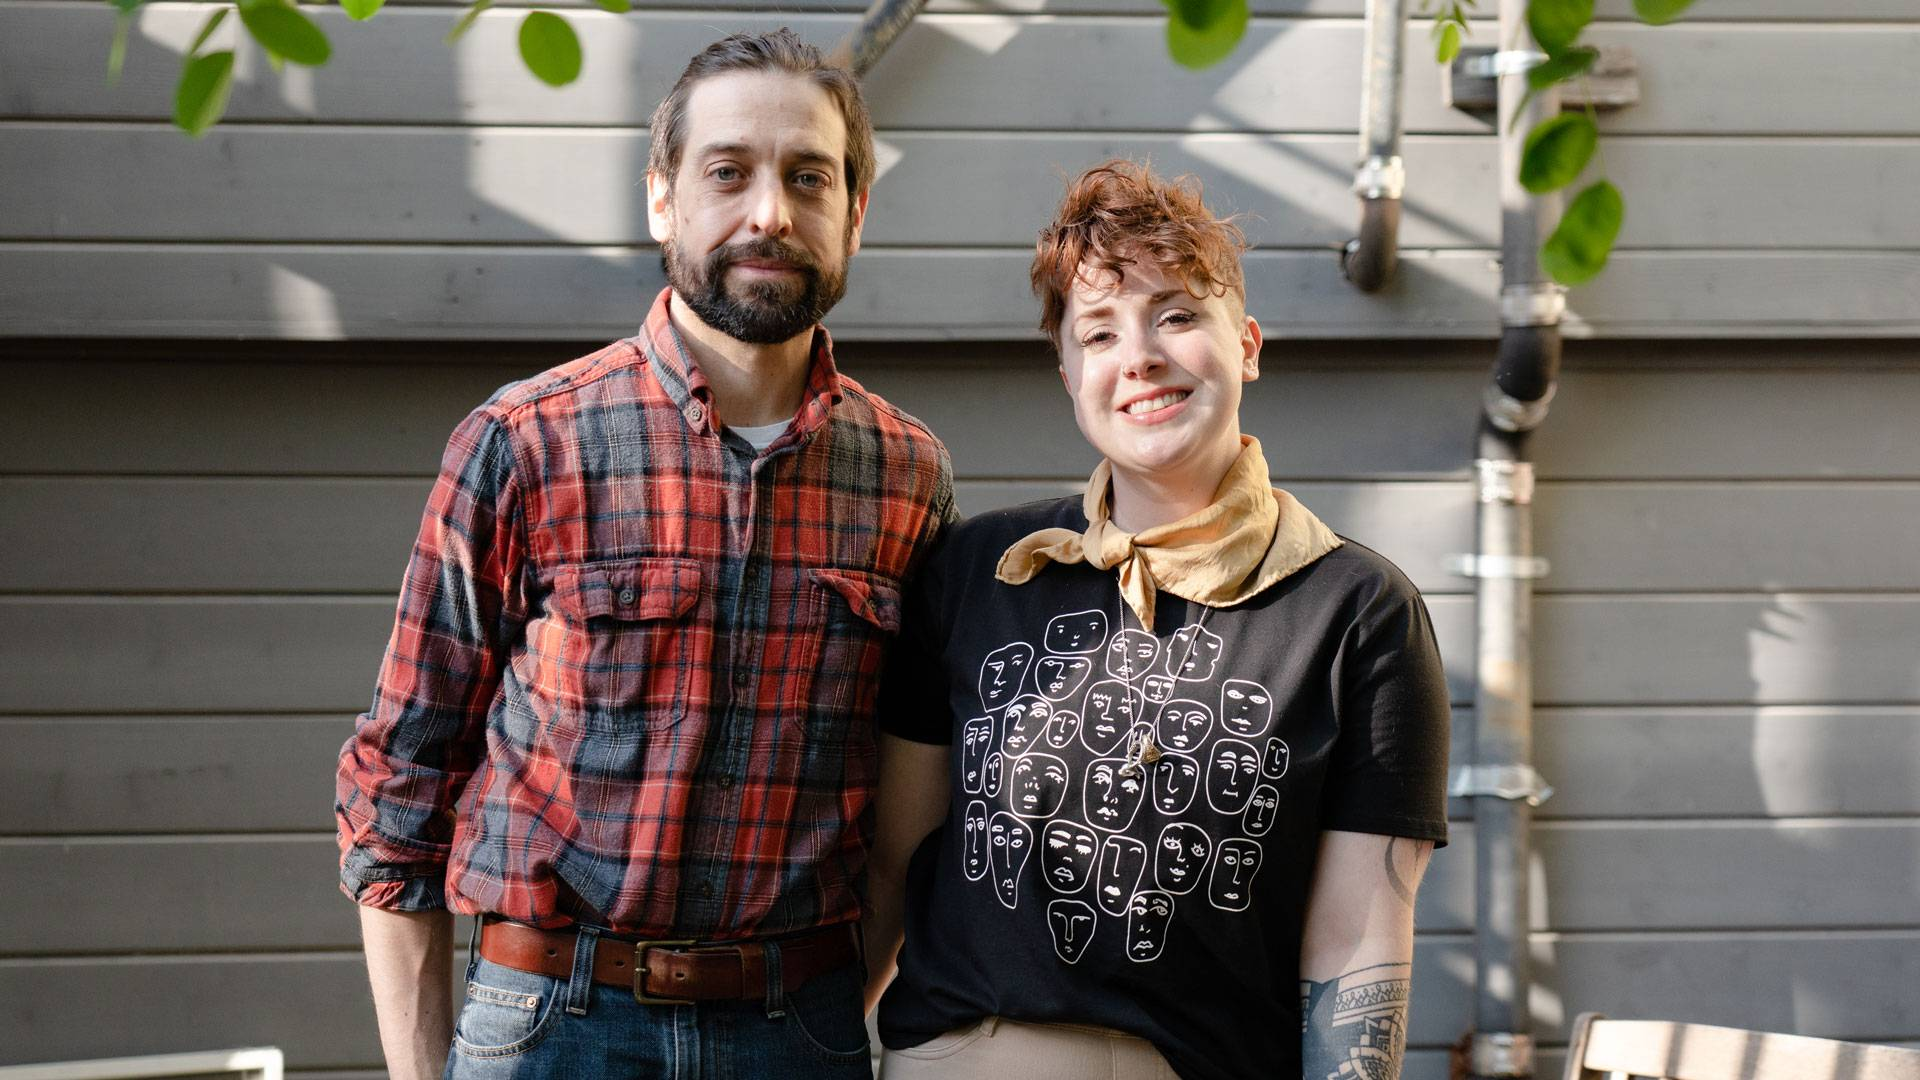 Ryan and Andrea Taylor started Ry's Knives to supplant lost income. Graham Holoch / KQED